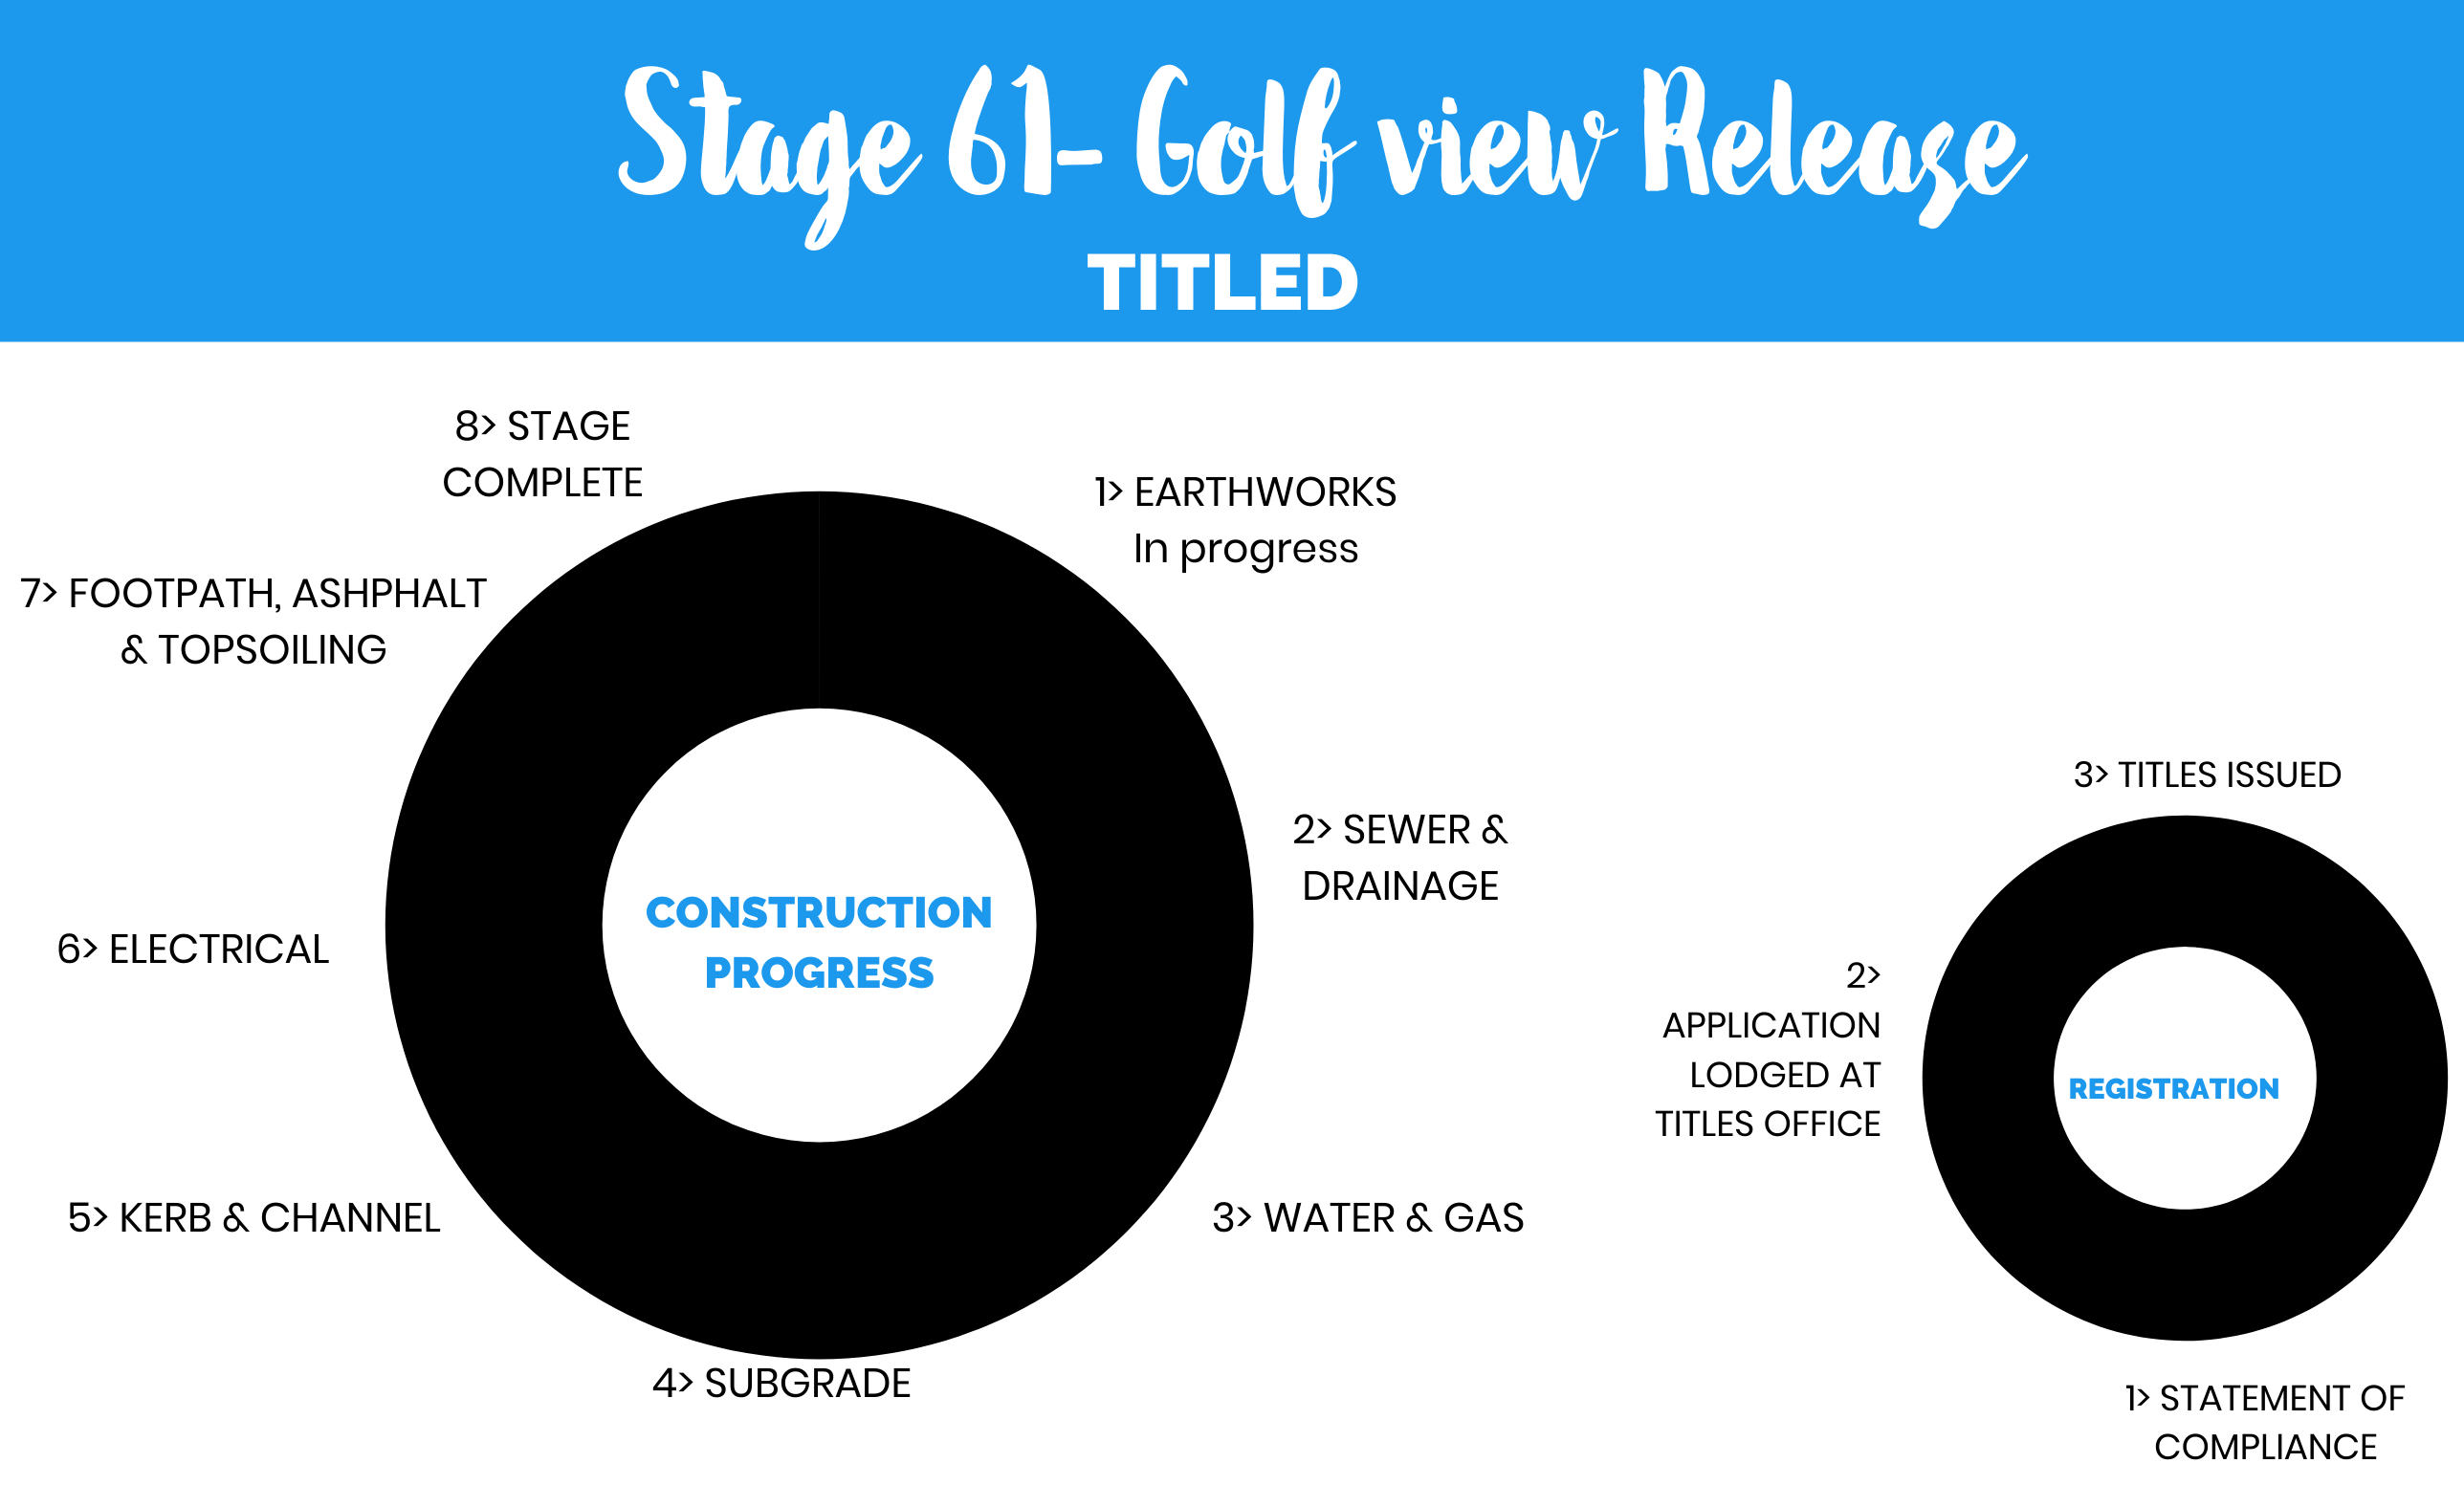 Stage 61 - Golf View Release